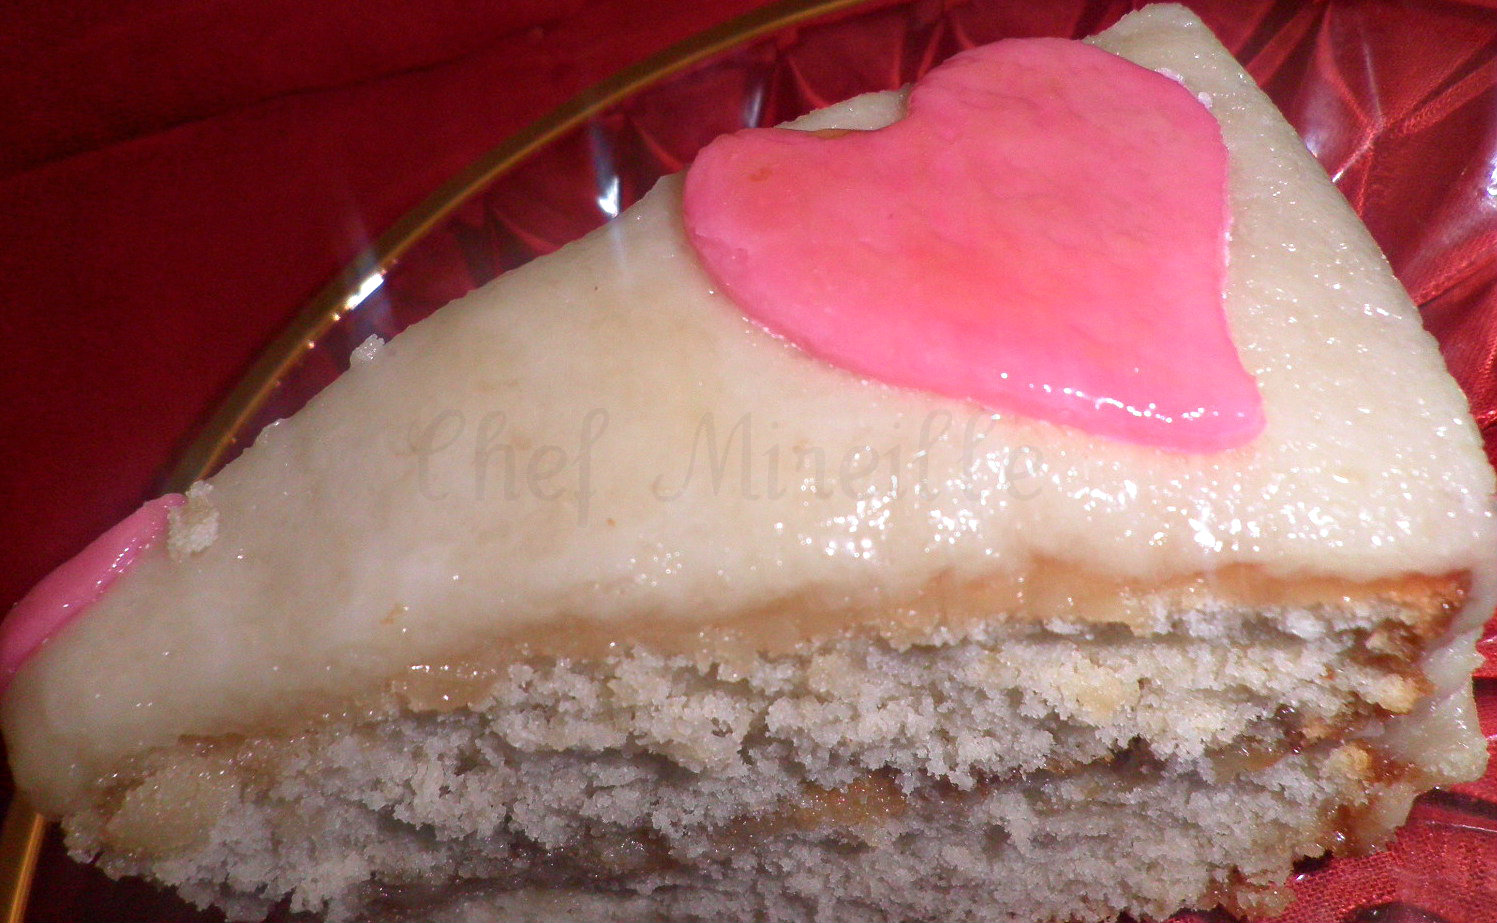 MarzipanStep By Step How To Cake Decorating The